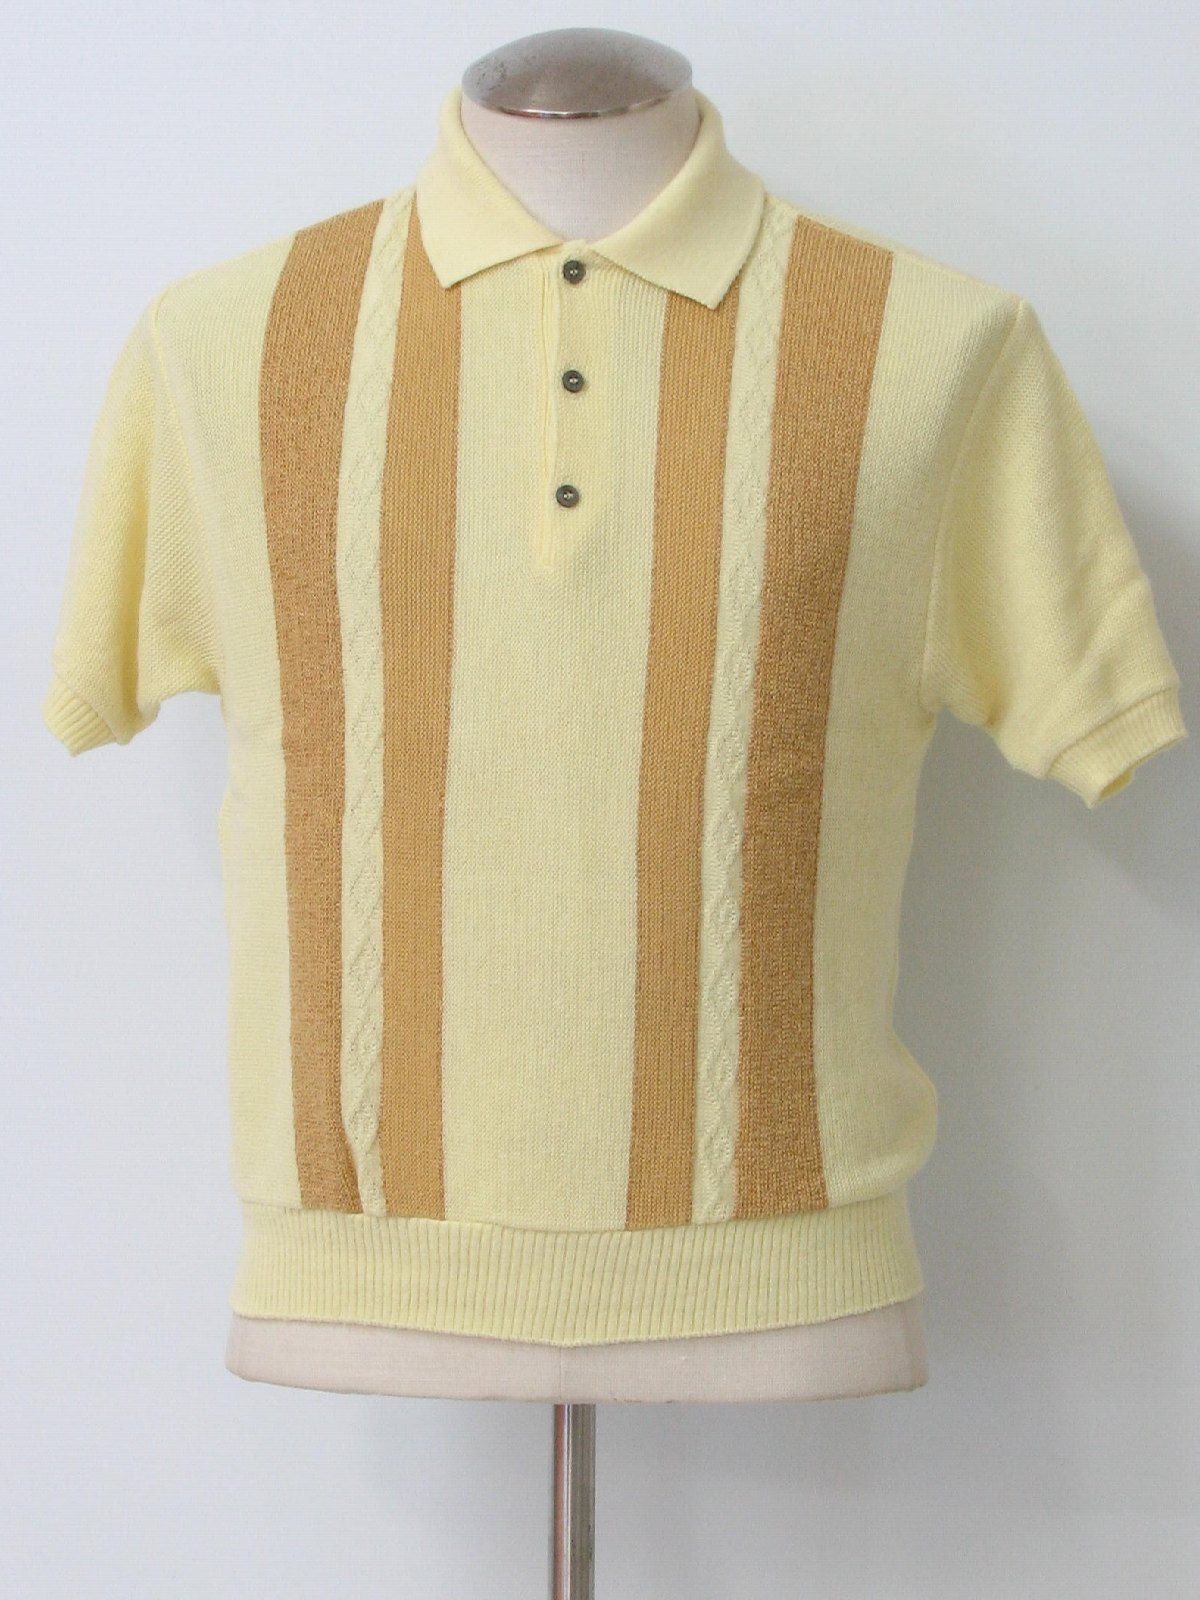 5199275739a4 60s -Sears- Mens soft yellow and golden-tan acrylic short sleeve pullover mod  knit shirt.